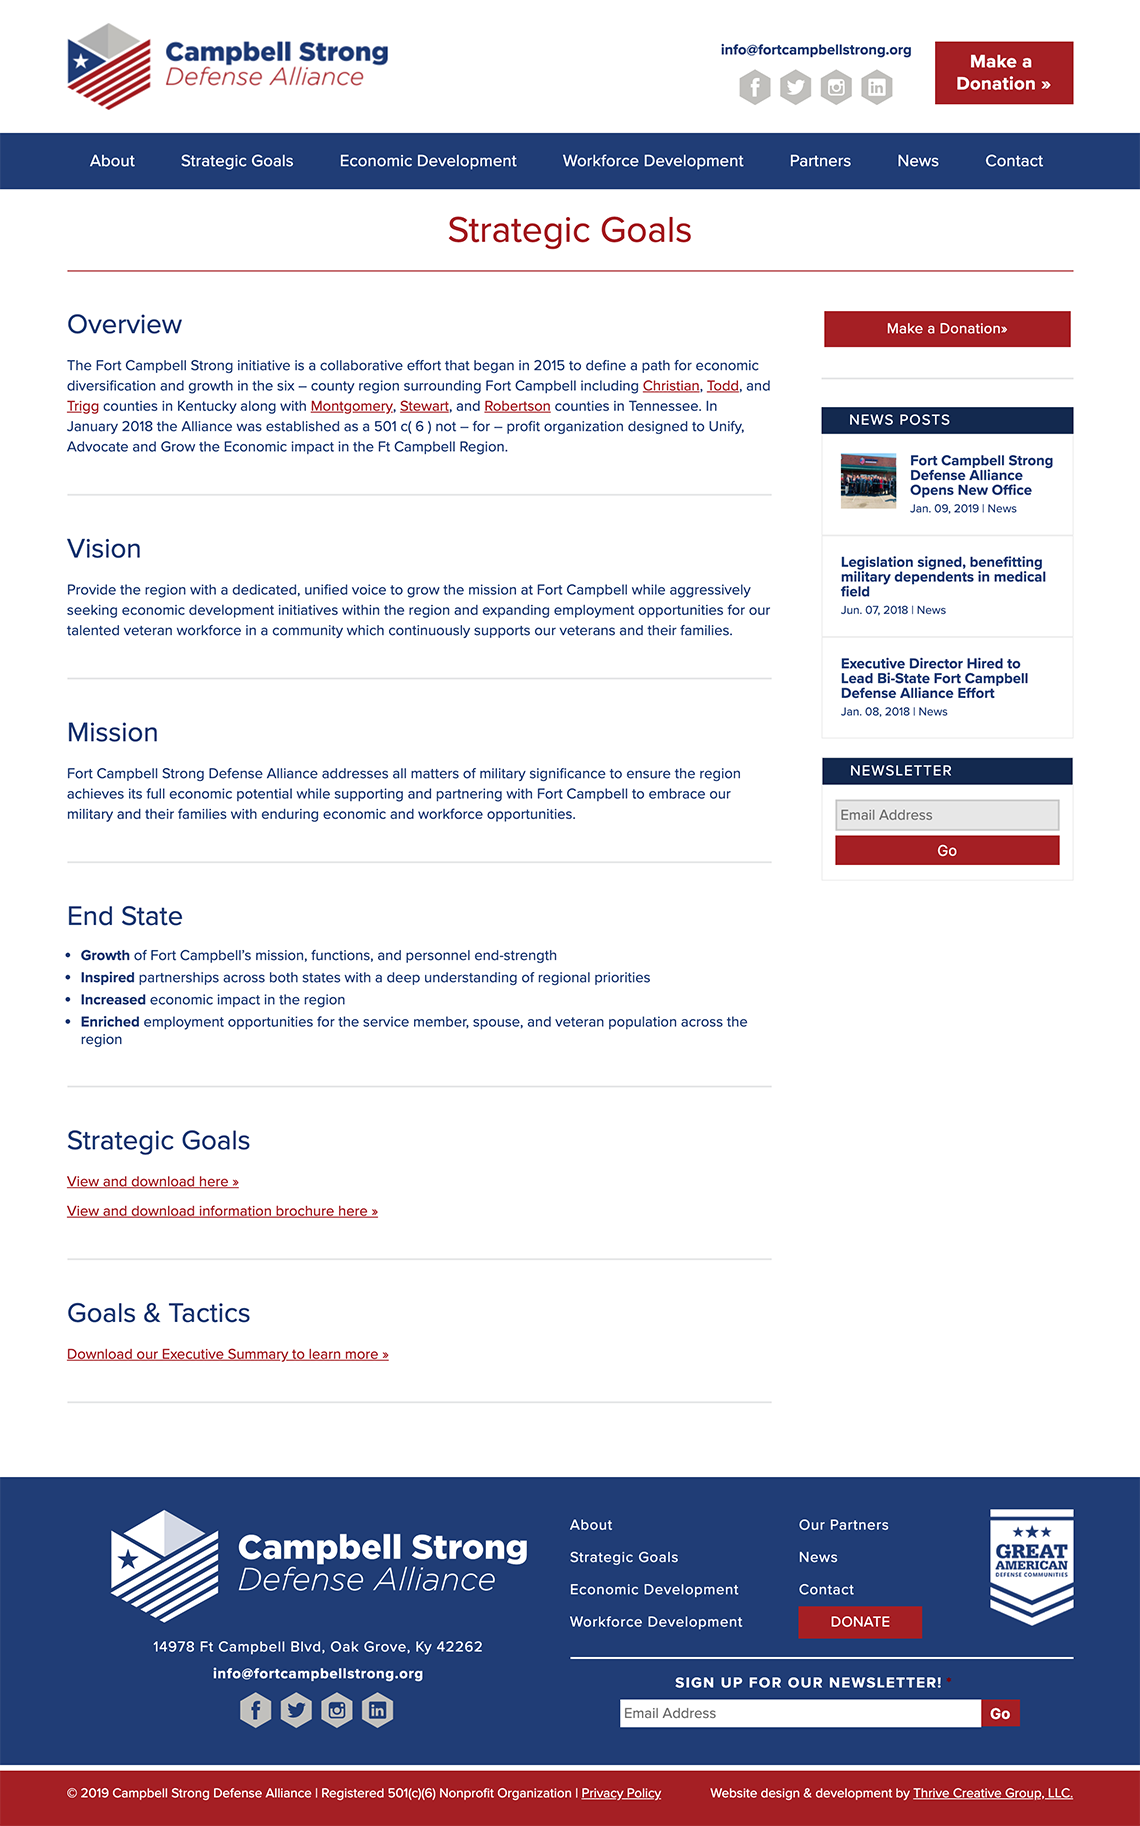 Campbell Strong Defense Alliance Web Design Interior Page by Thrive